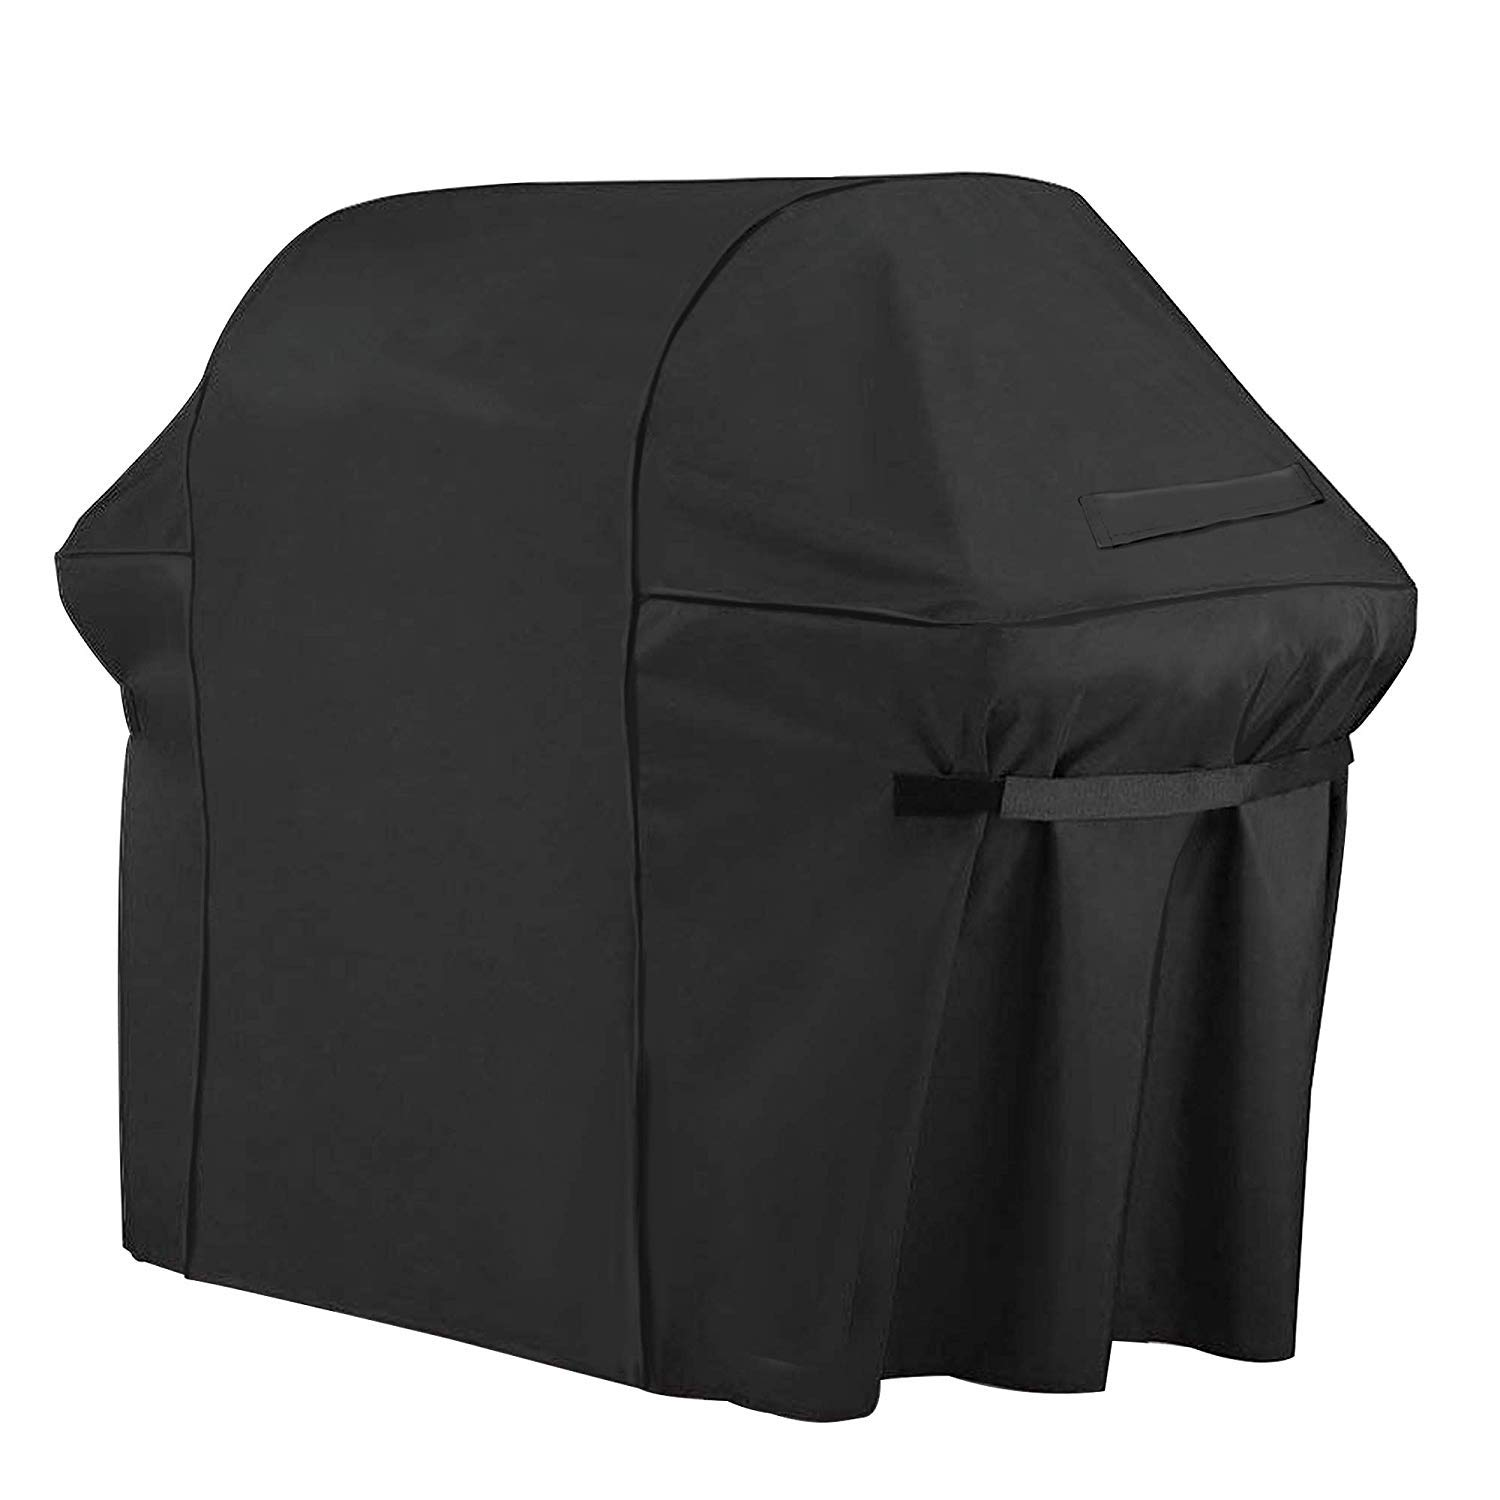 iCOVER Gas Grill Cover-58 inch 600D Canvas Waterproof Fade Resistant Heavy Duty Barbeque BBQ Grill Cover Sized for Weber,Char Broil,Holland, Jenn Air,Brinkmann.G21653.